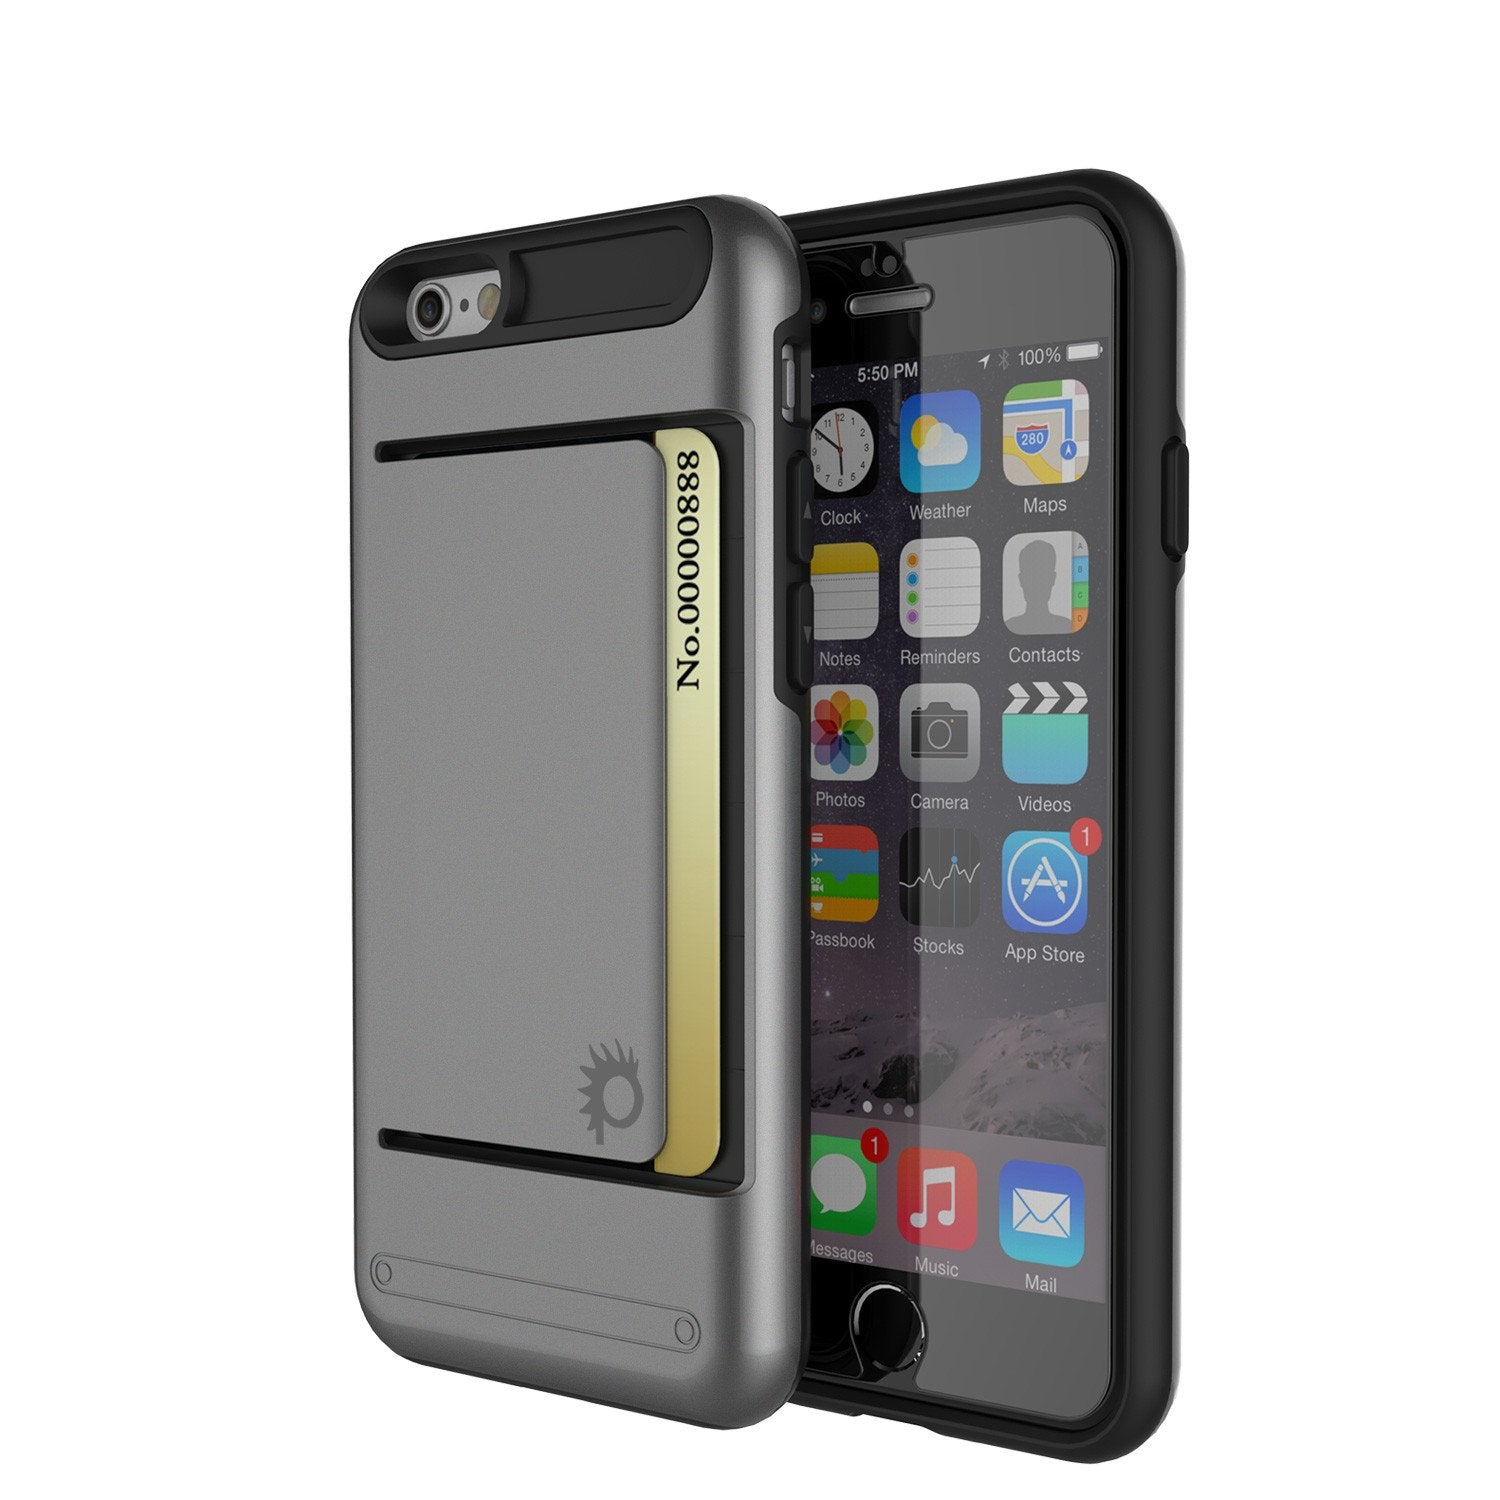 iPhone 6/6s Case PunkCase CLUTCH Grey Series Slim Armor Soft Cover Case w/ Tempered Glass